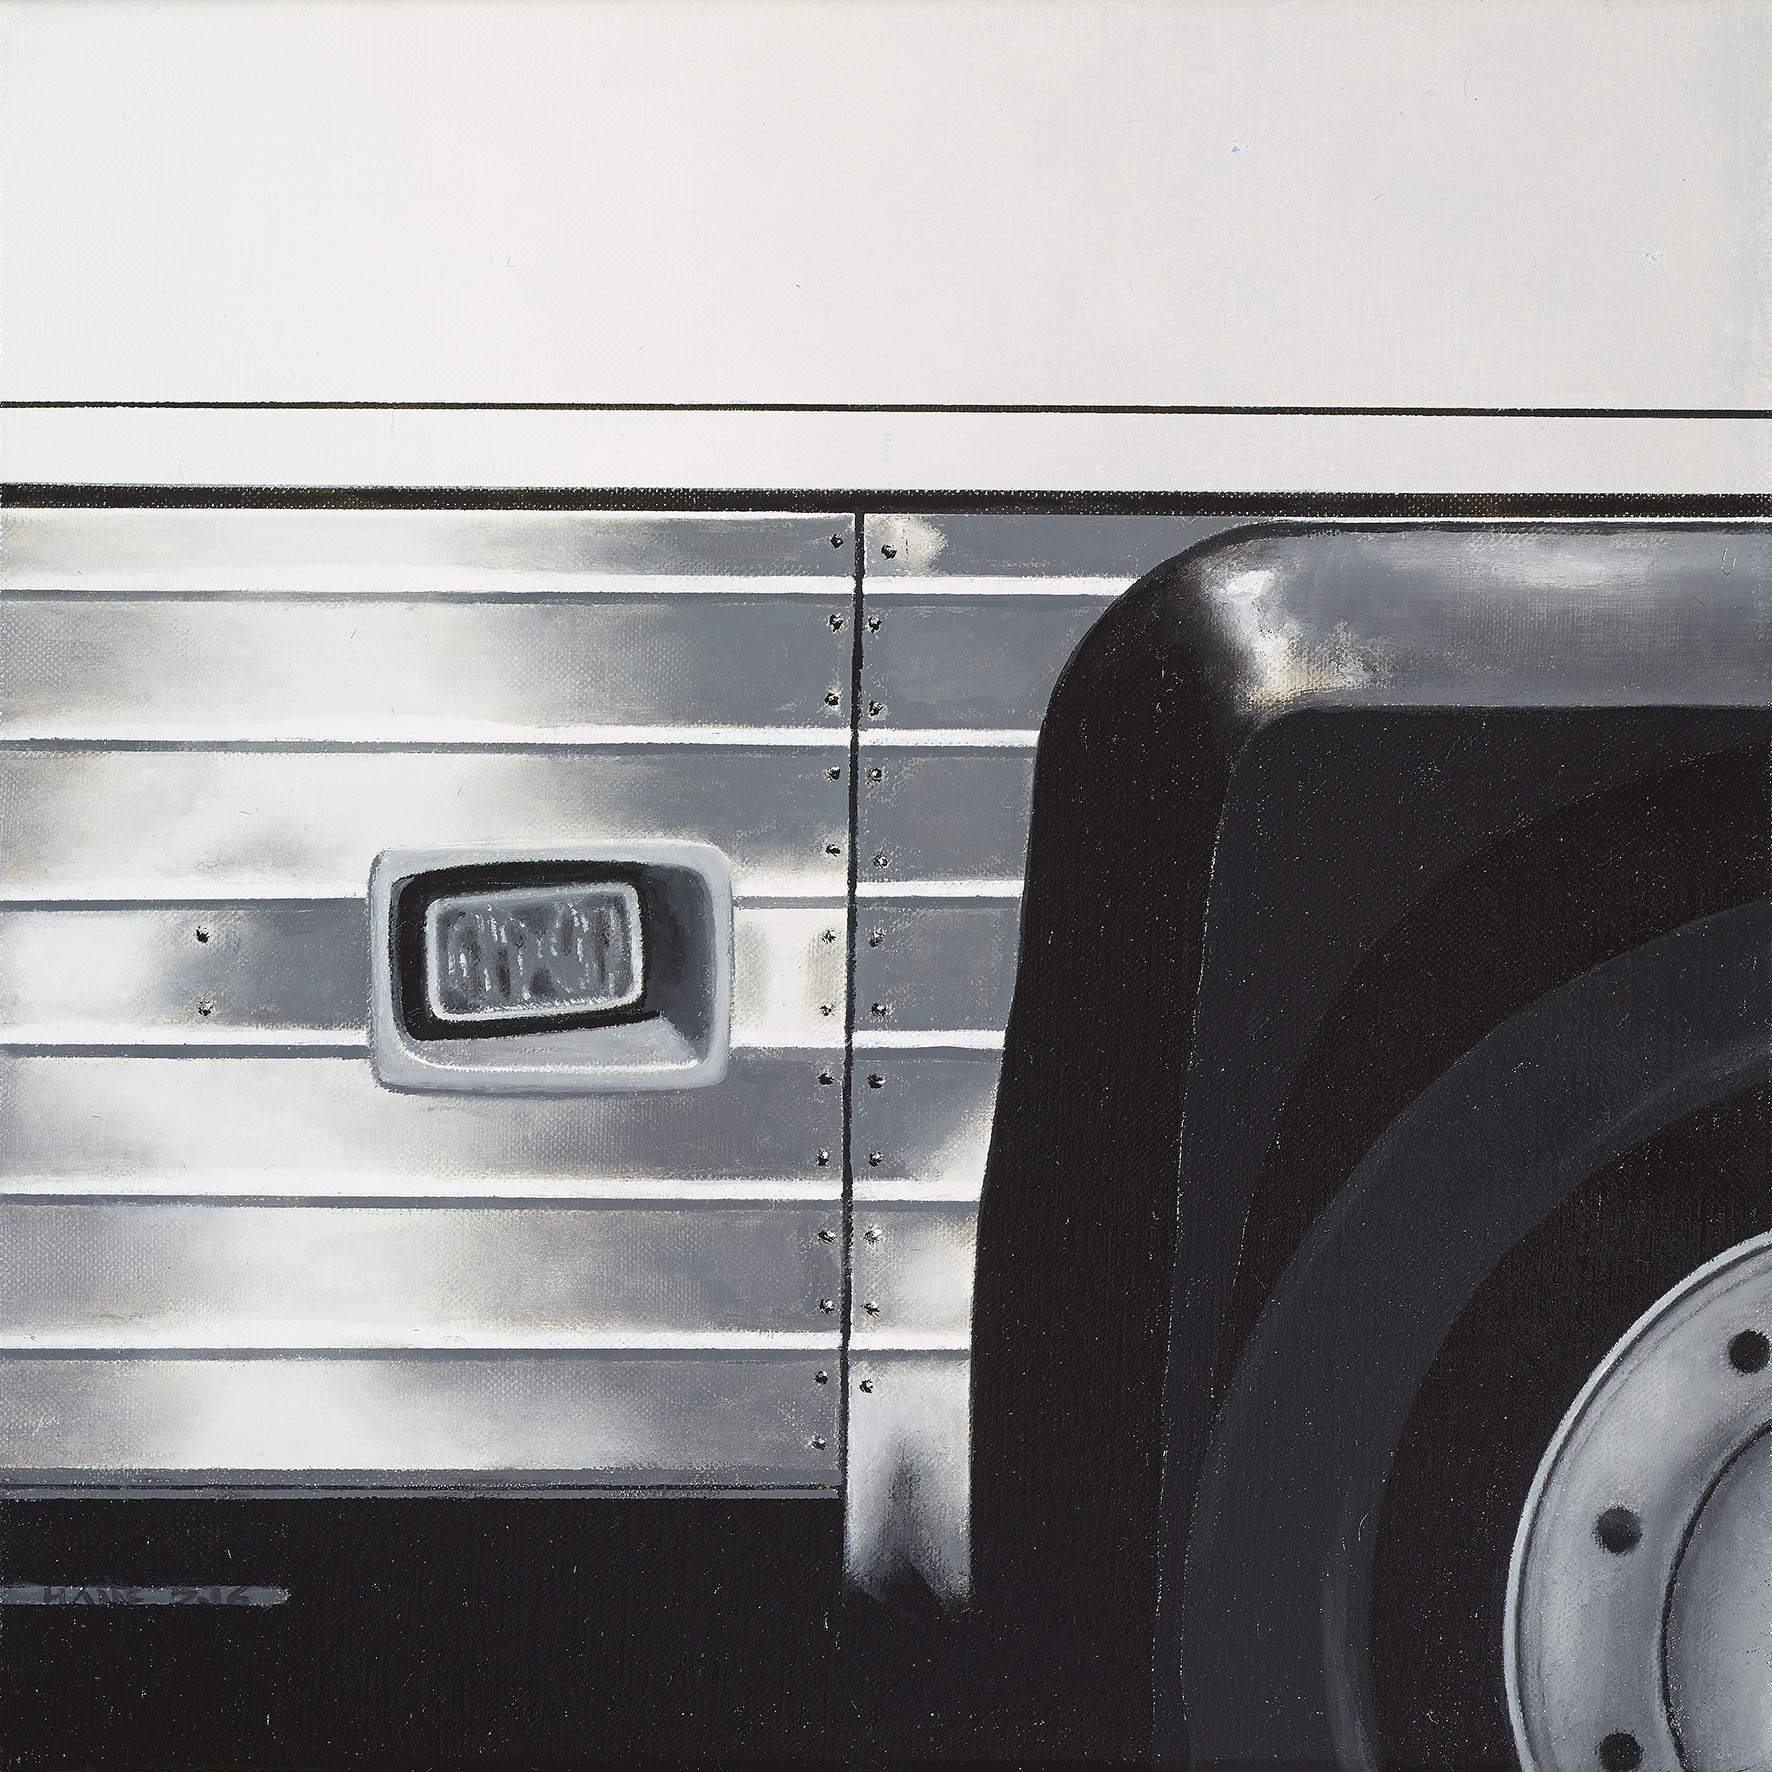 Bus -  Private Collection, United States